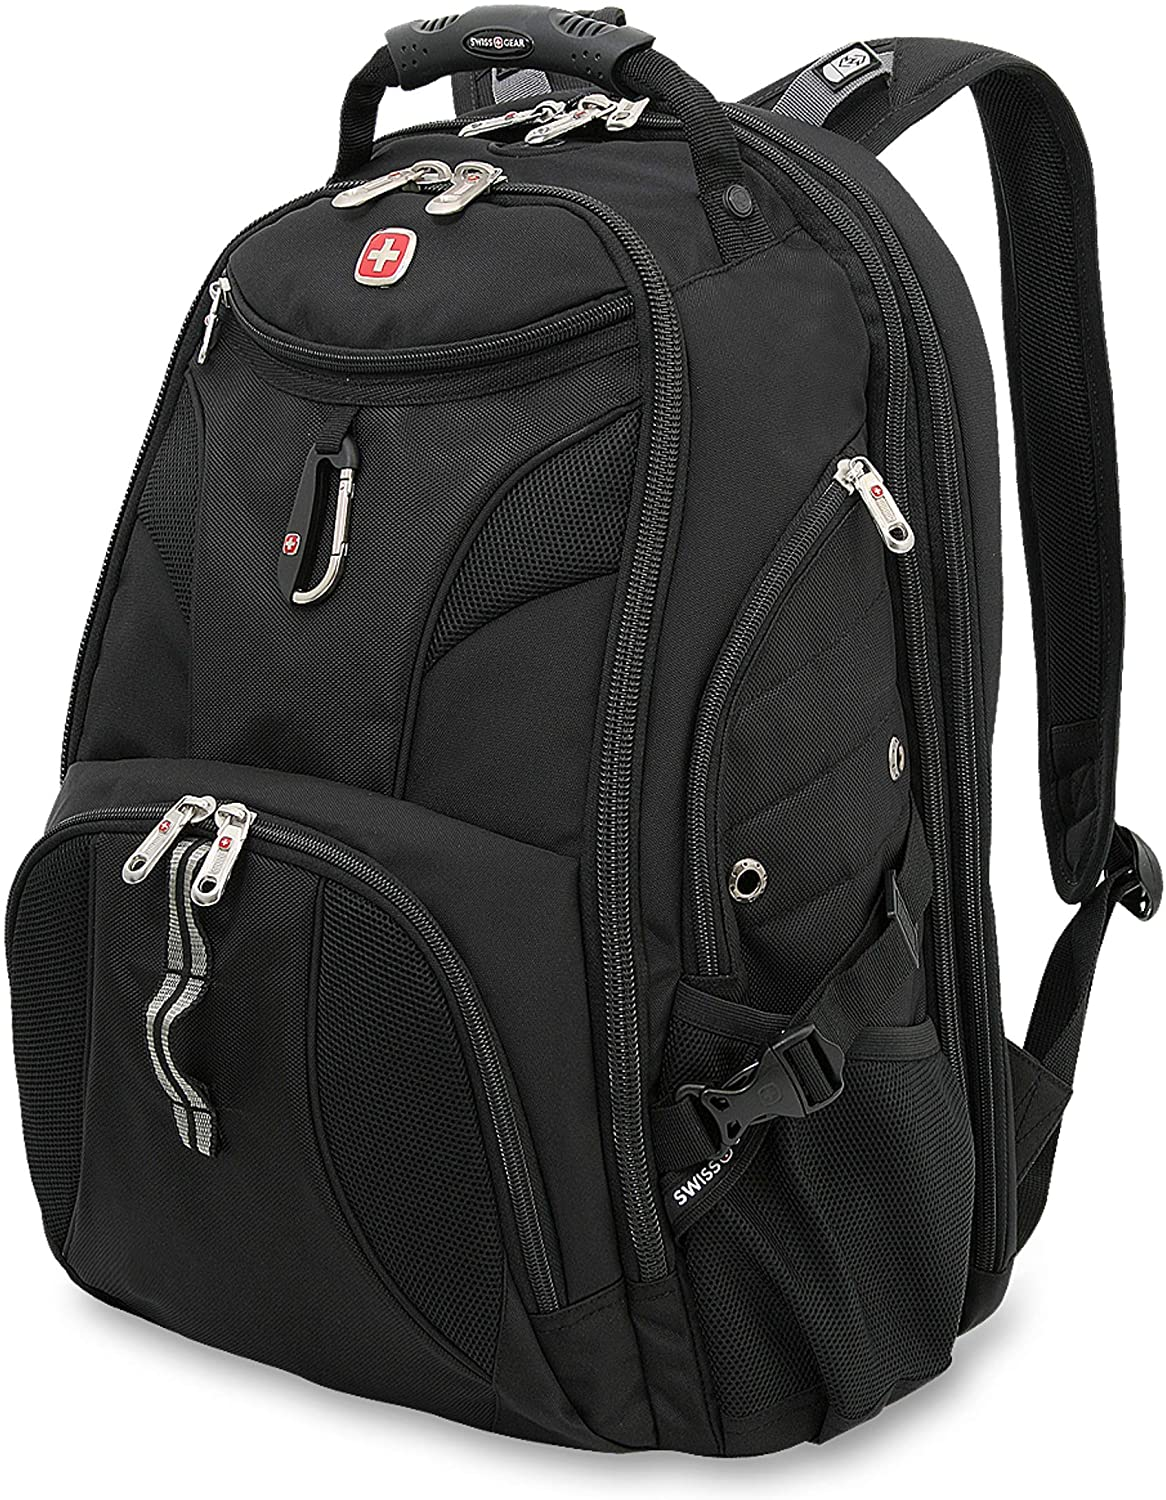 SWISSGEAR 1900 ScanSmart TSA-Friendly College Laptop Backpack